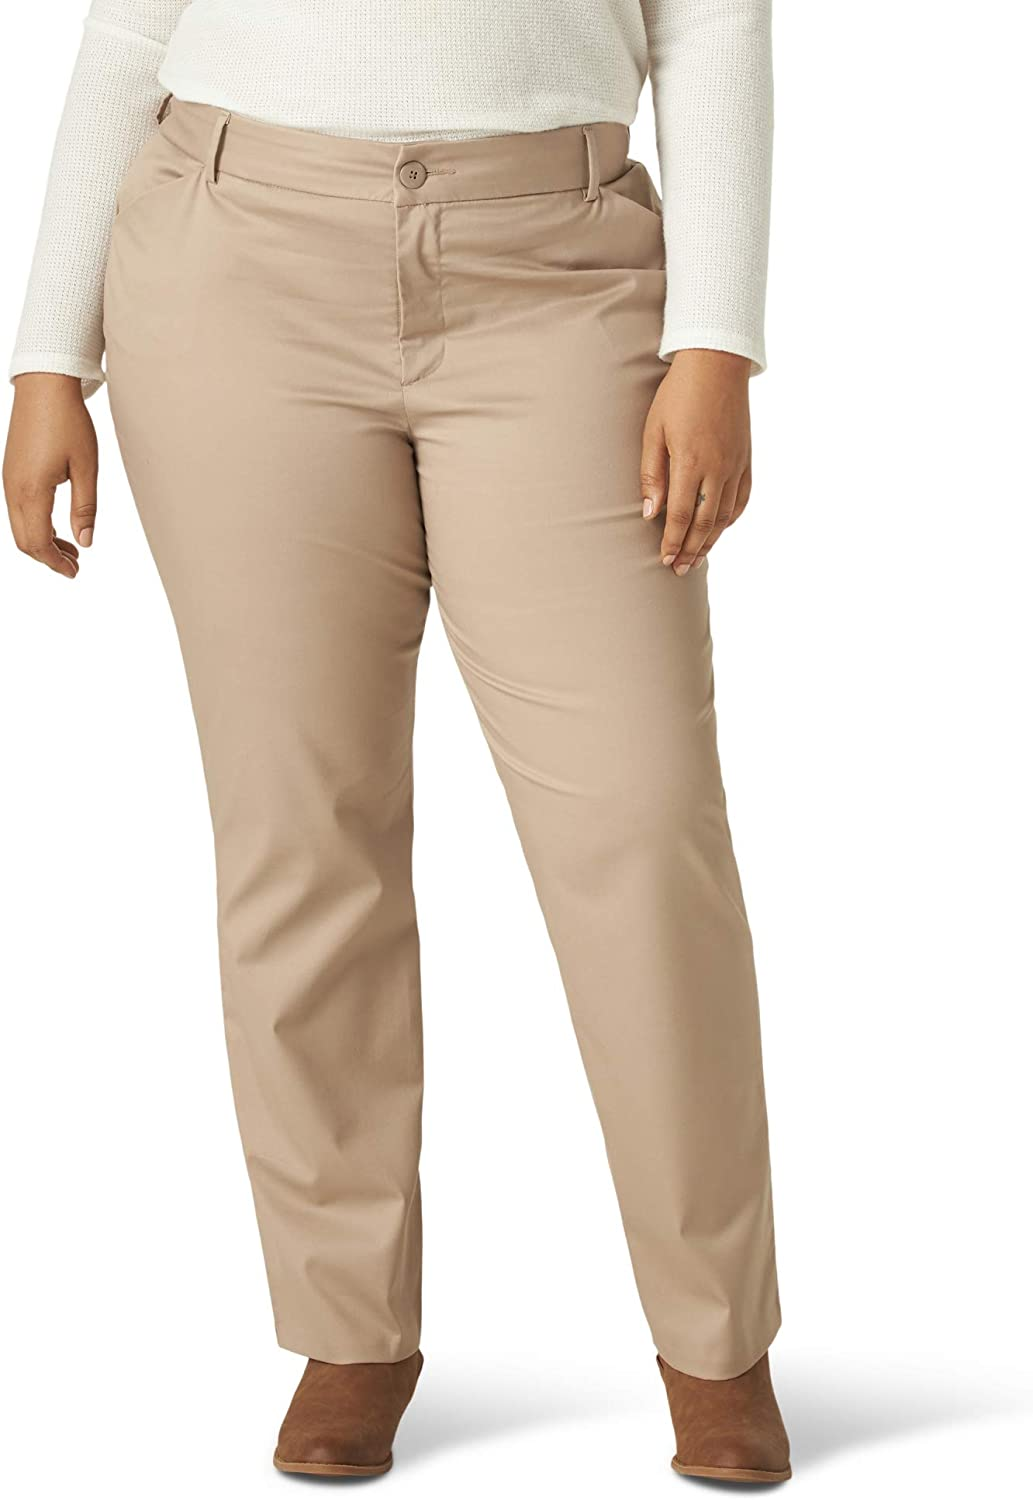 Lee Women's Plus Size Wrinkle Free Relaxed Fit Straight Leg Pant at  Women's Clothing store